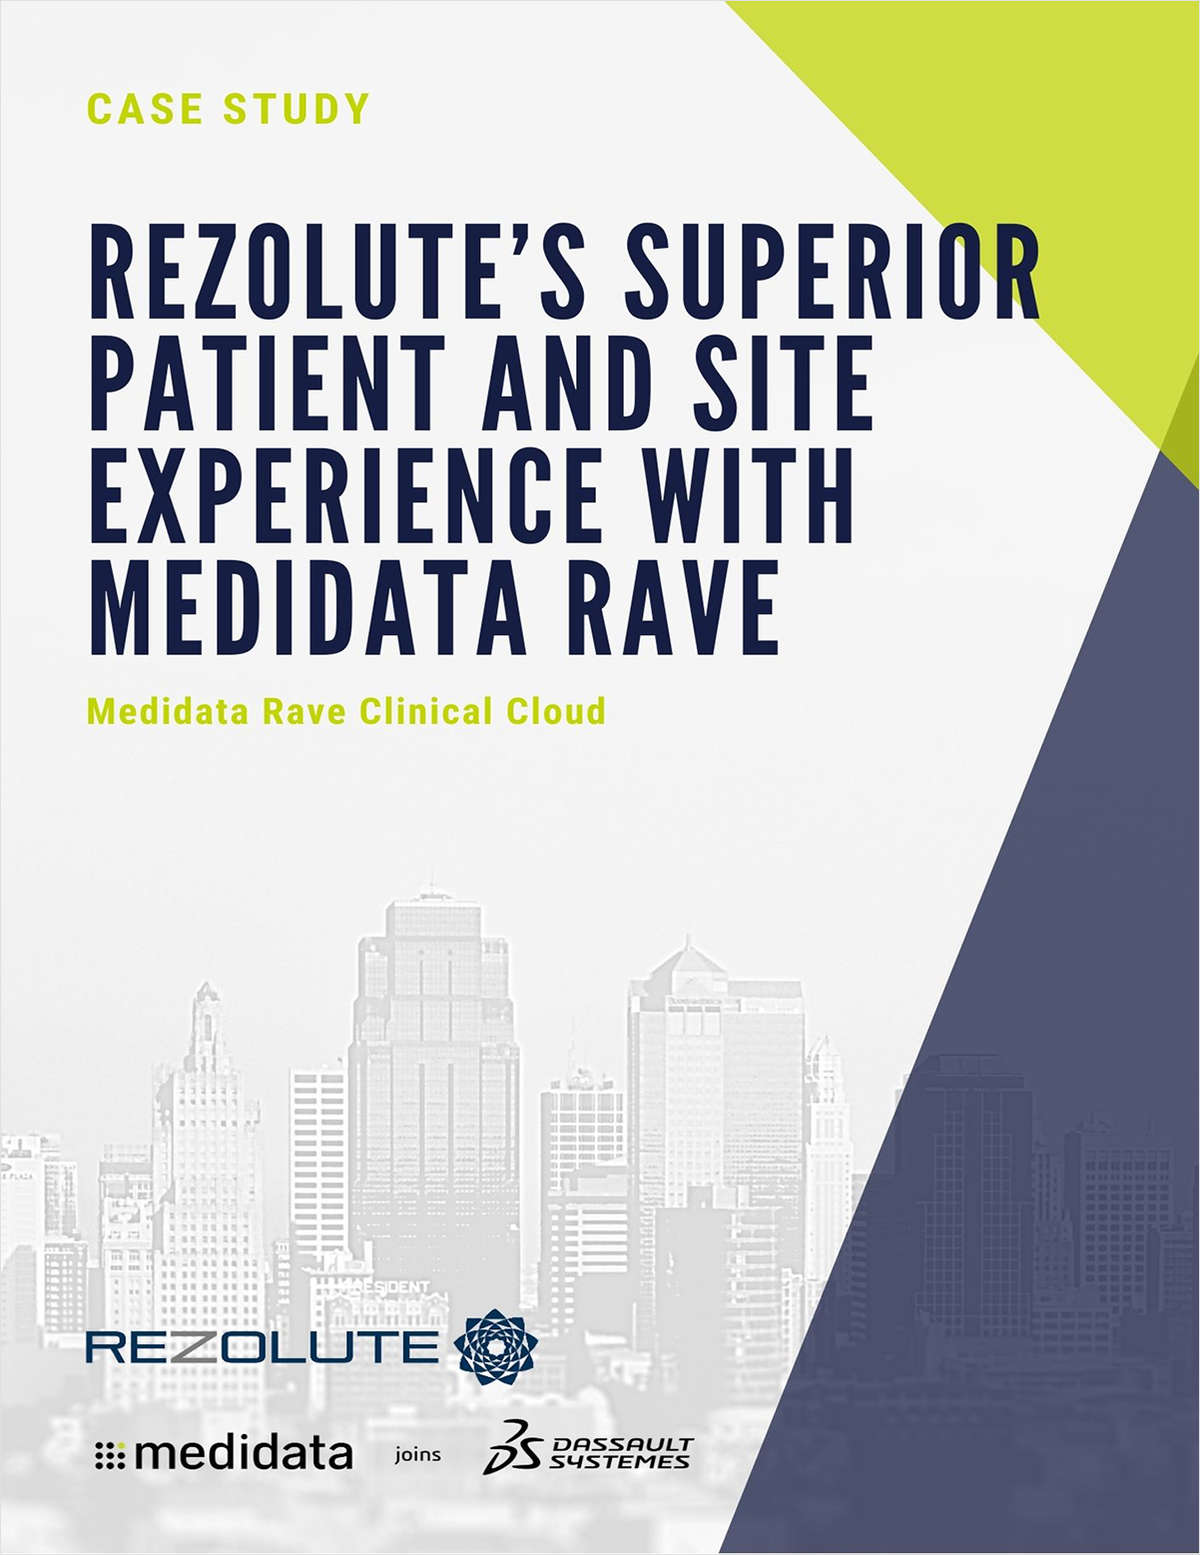 Rezolute's Superior Patient and Site Experience with Medidata Rave